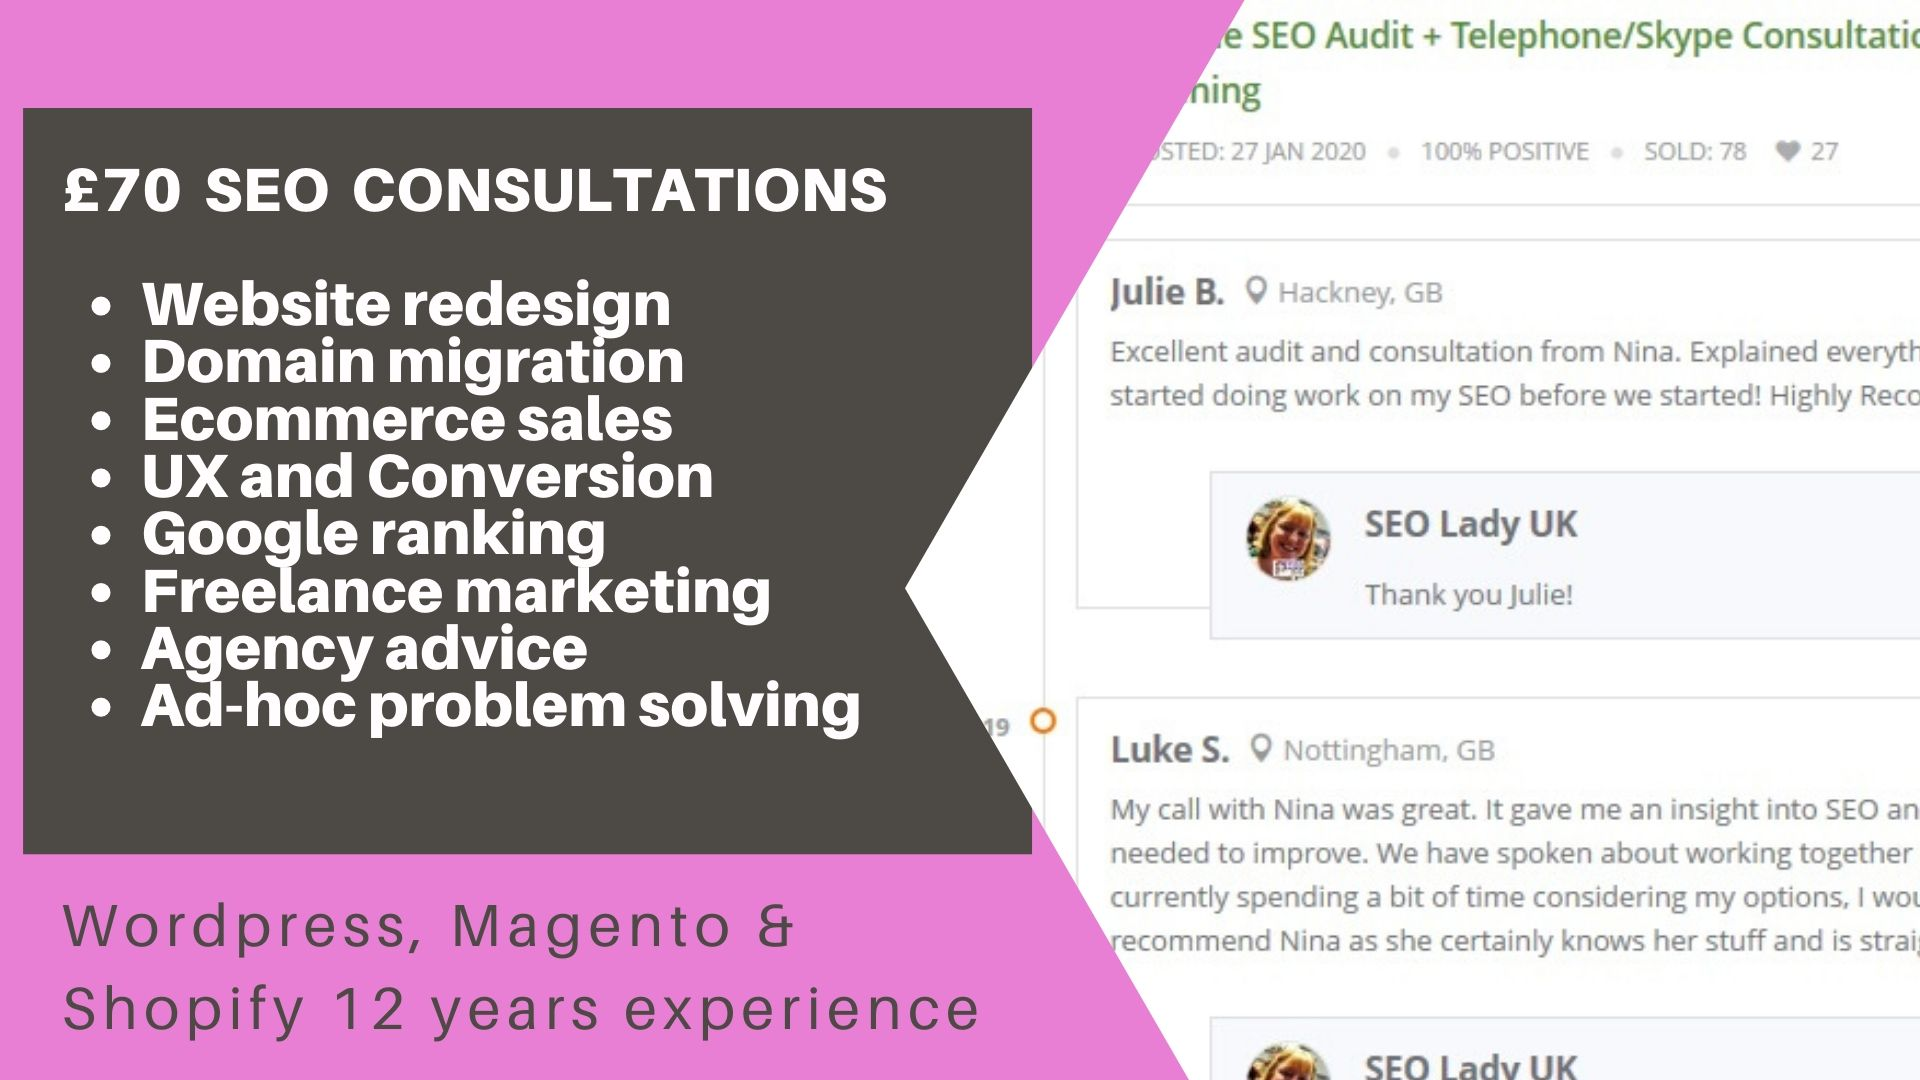 SEO Freelancer UK Consultant Google Ranking Website Redesign Domain Migration Digital Manager